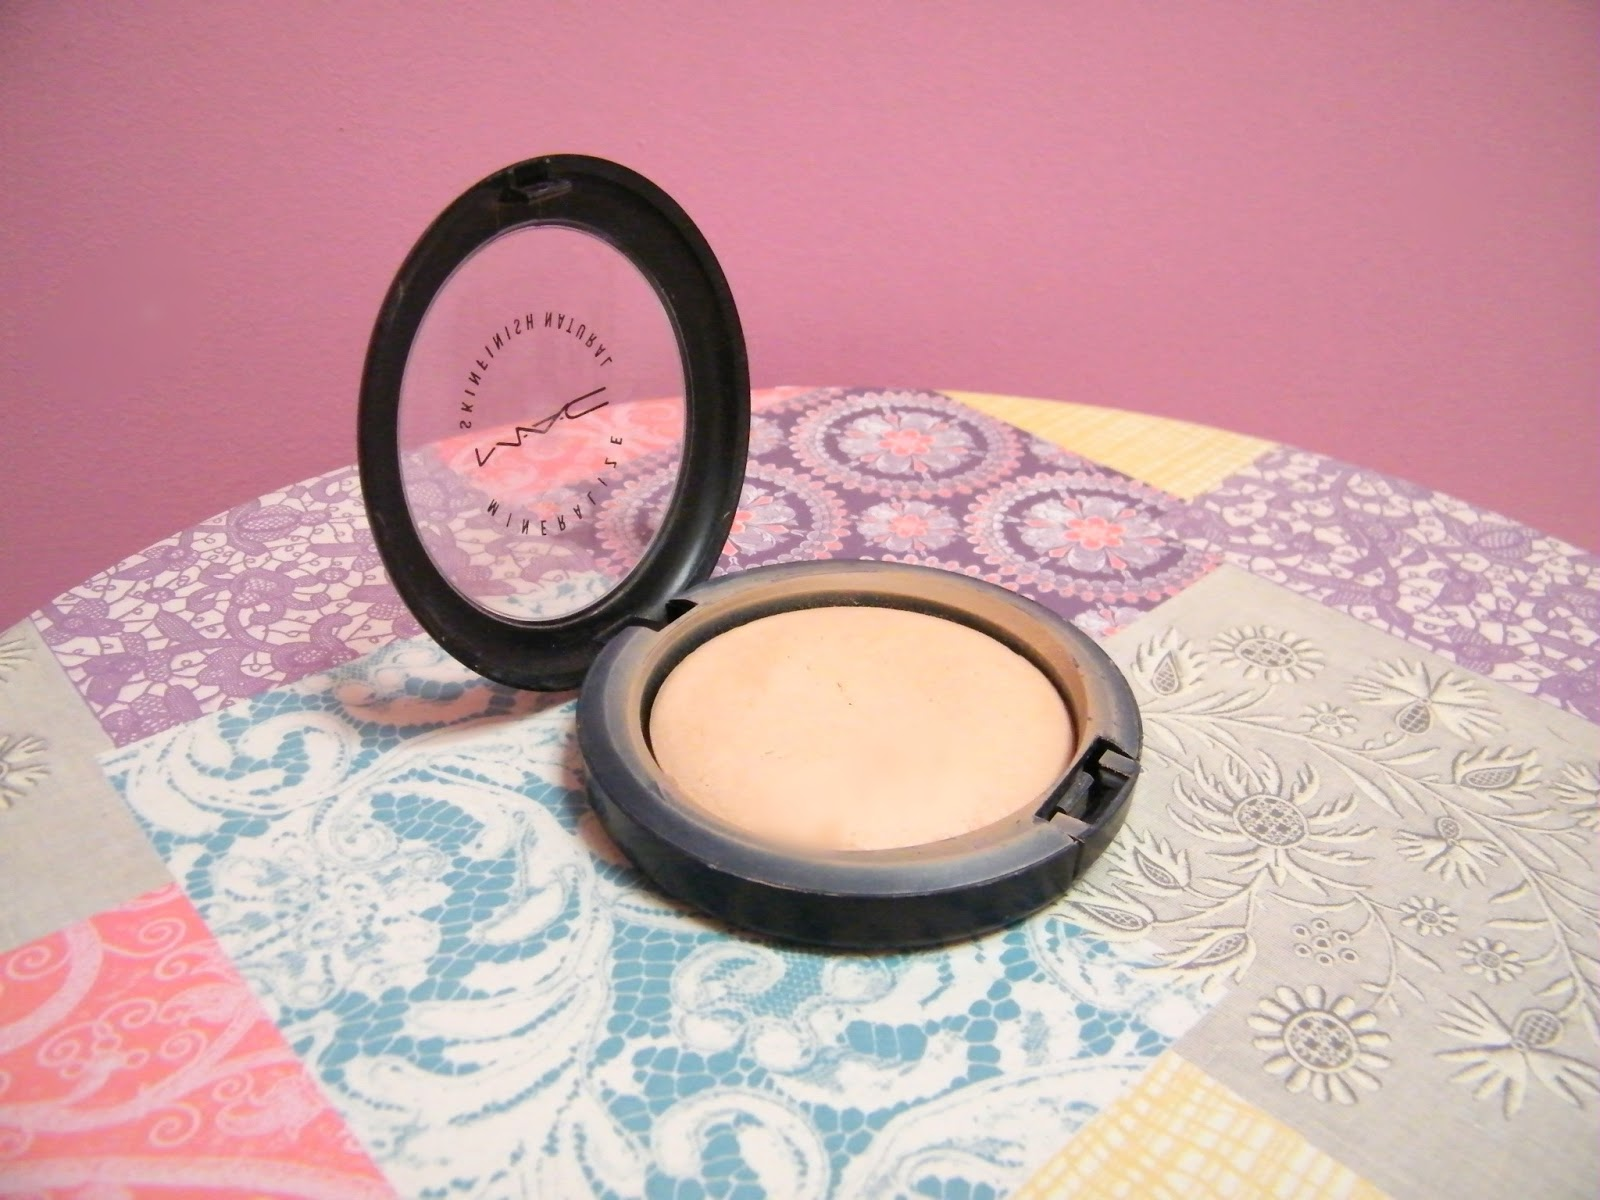 MAC Mineralize Skinfinish Natural in Light Plus